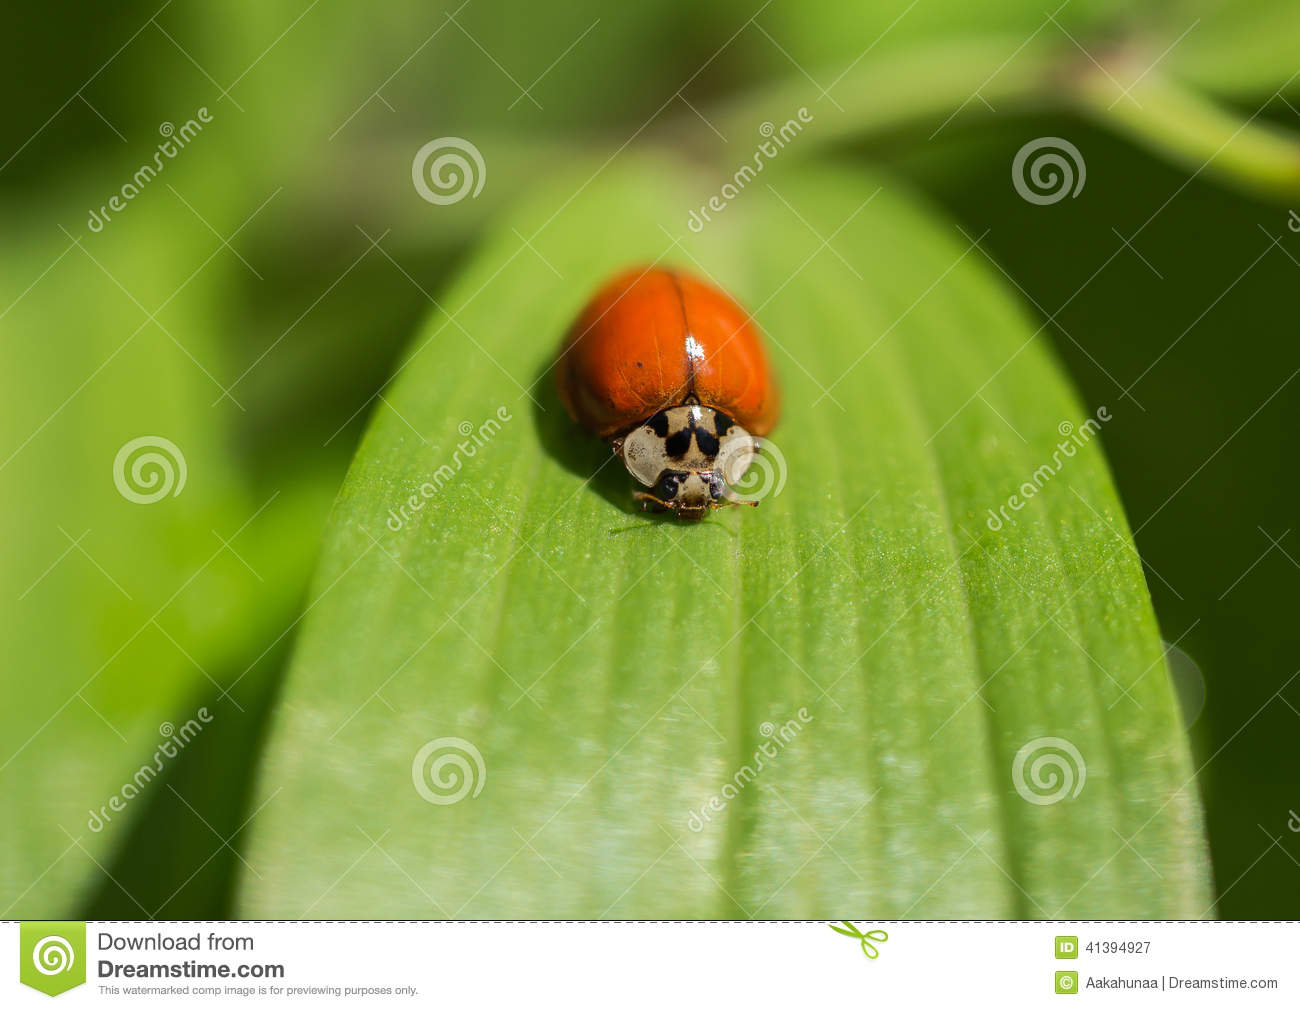 Finding Some Spots Of Bright Color At >> The Beetles Stock Image Image Of Leaves Outdoor Ecology 41394927